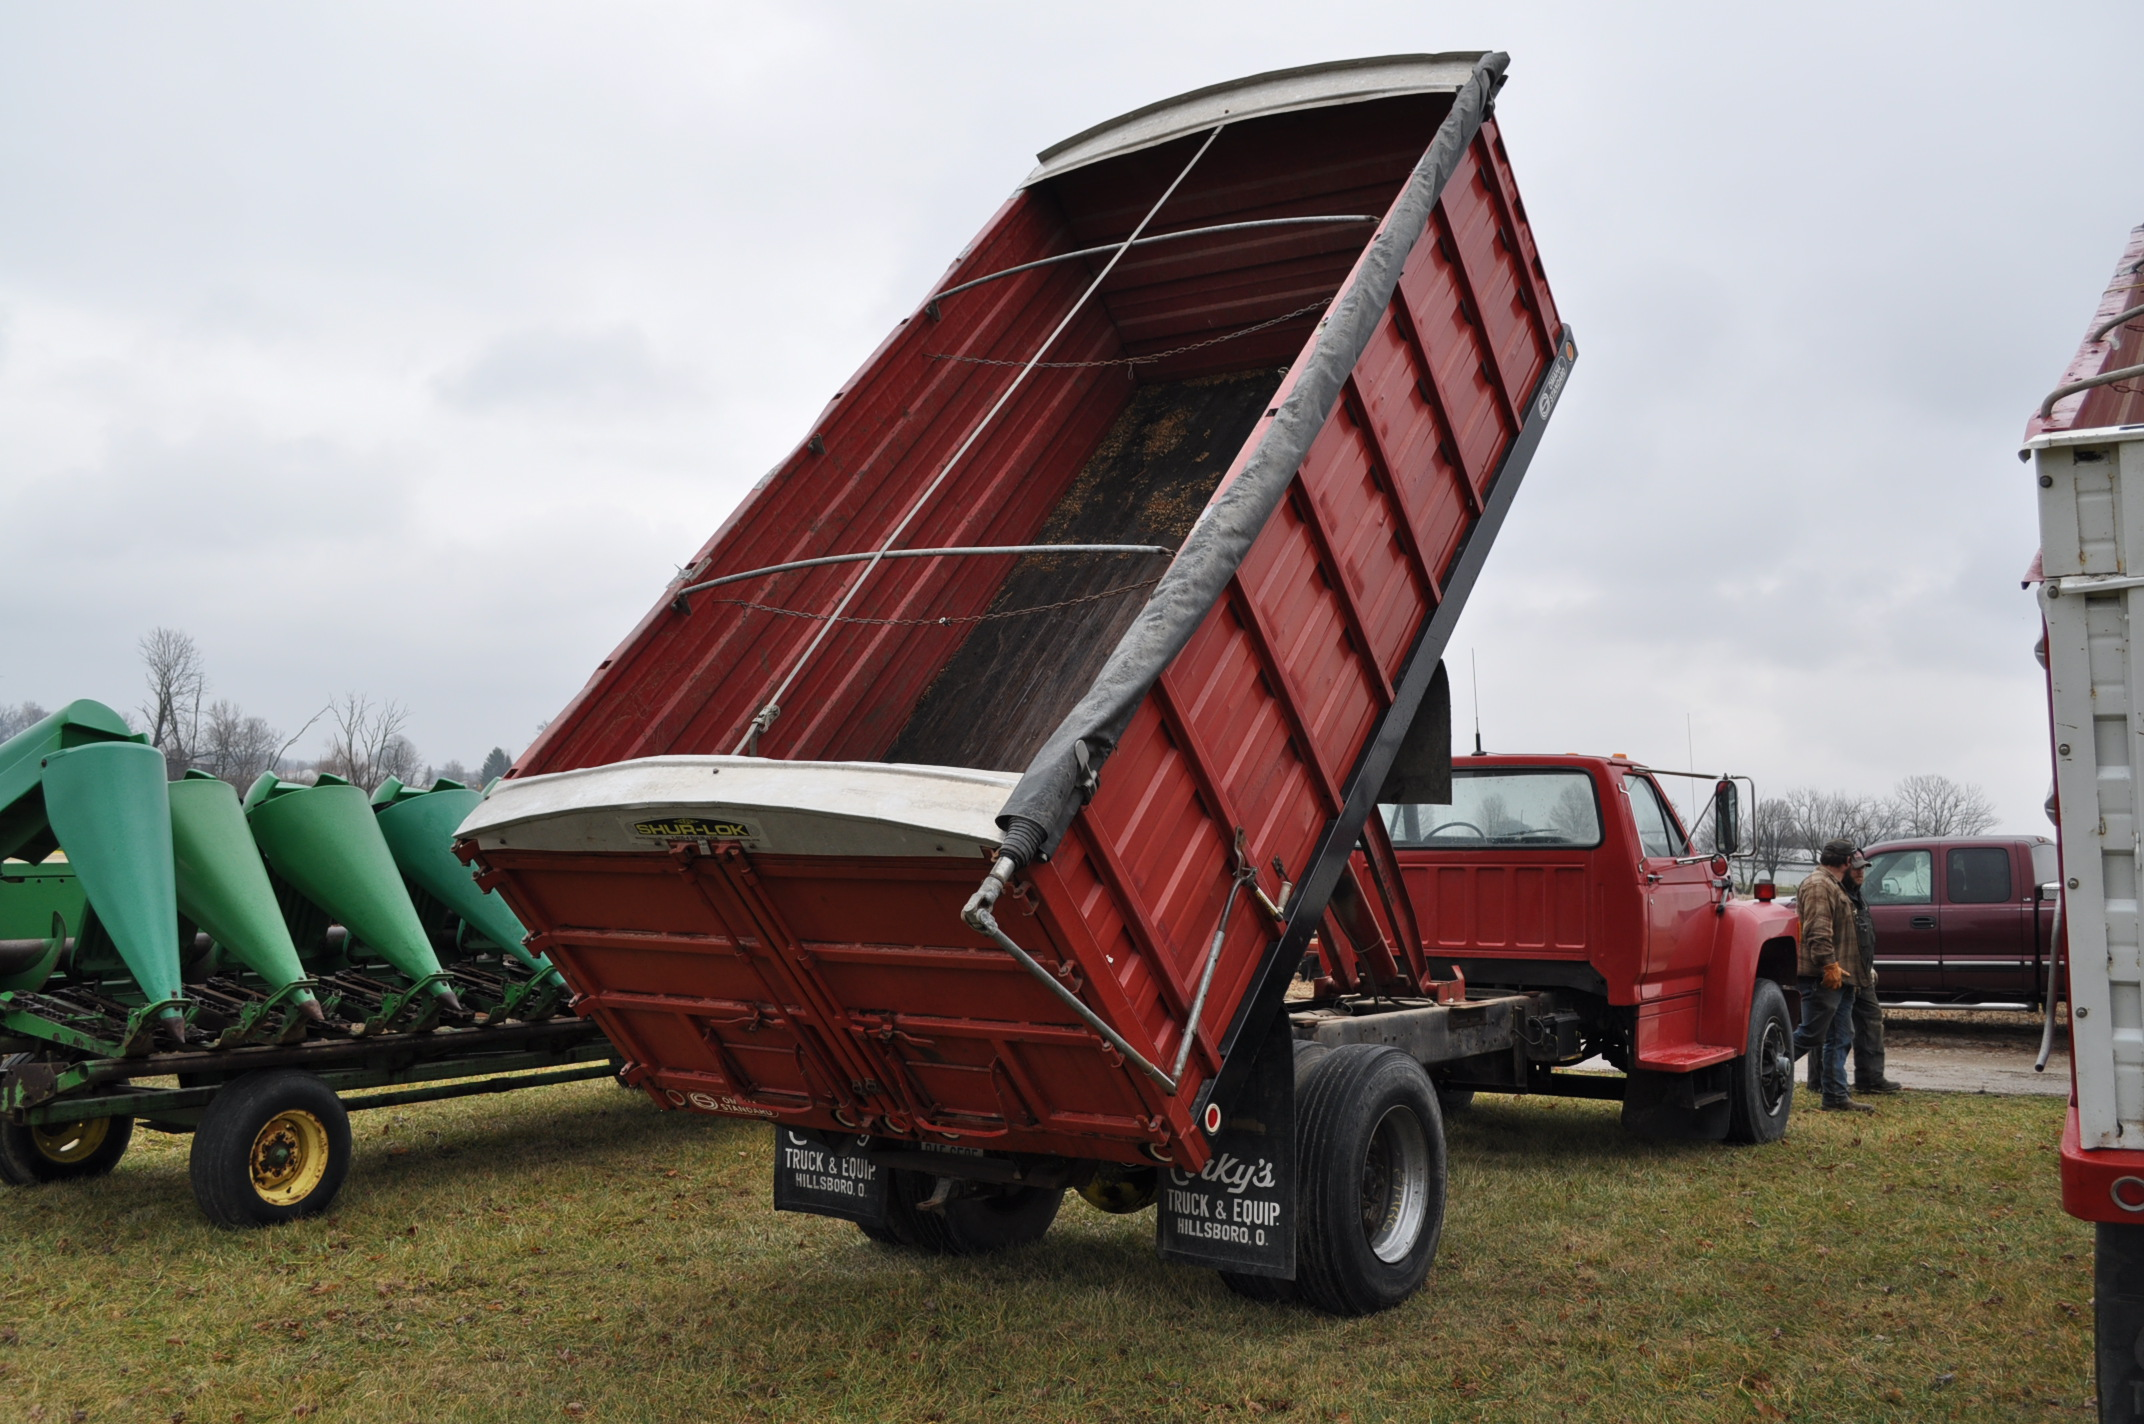 1988 Ford F800 grain truck, single axle, 427 V-8, auto, 11 R 22.5 tires, 16' Omaha Standard bed, - Image 3 of 17